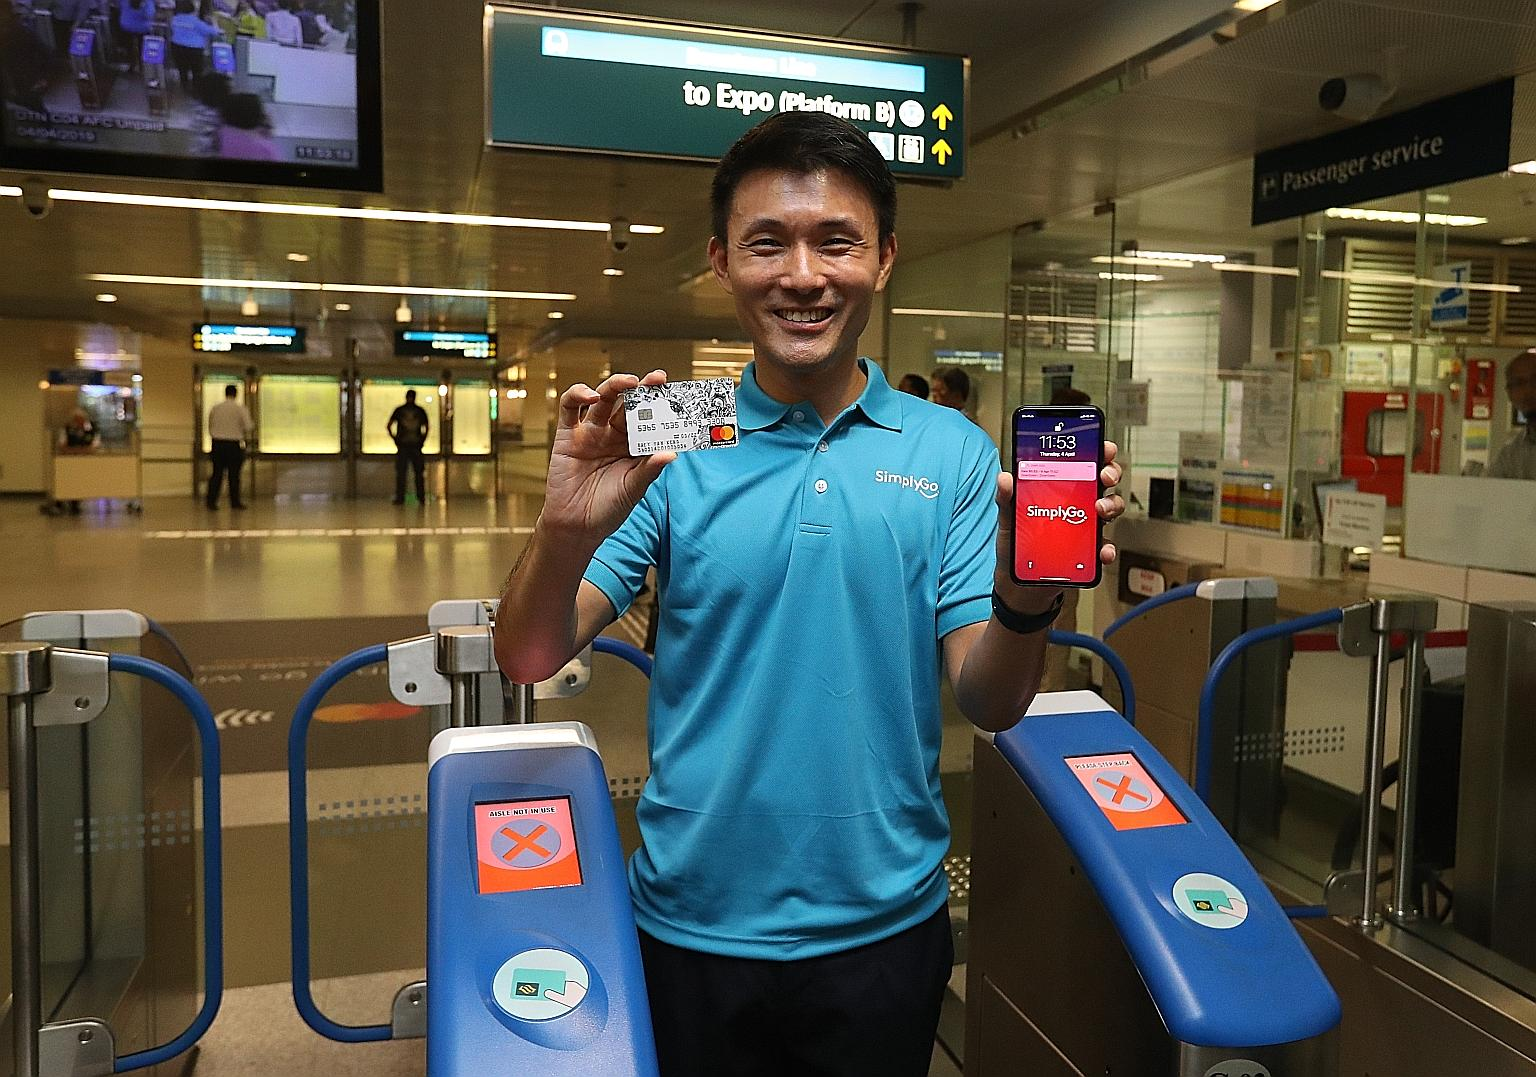 SimplyGo works with a regular card or with a mobile device, photo from  Straits Times